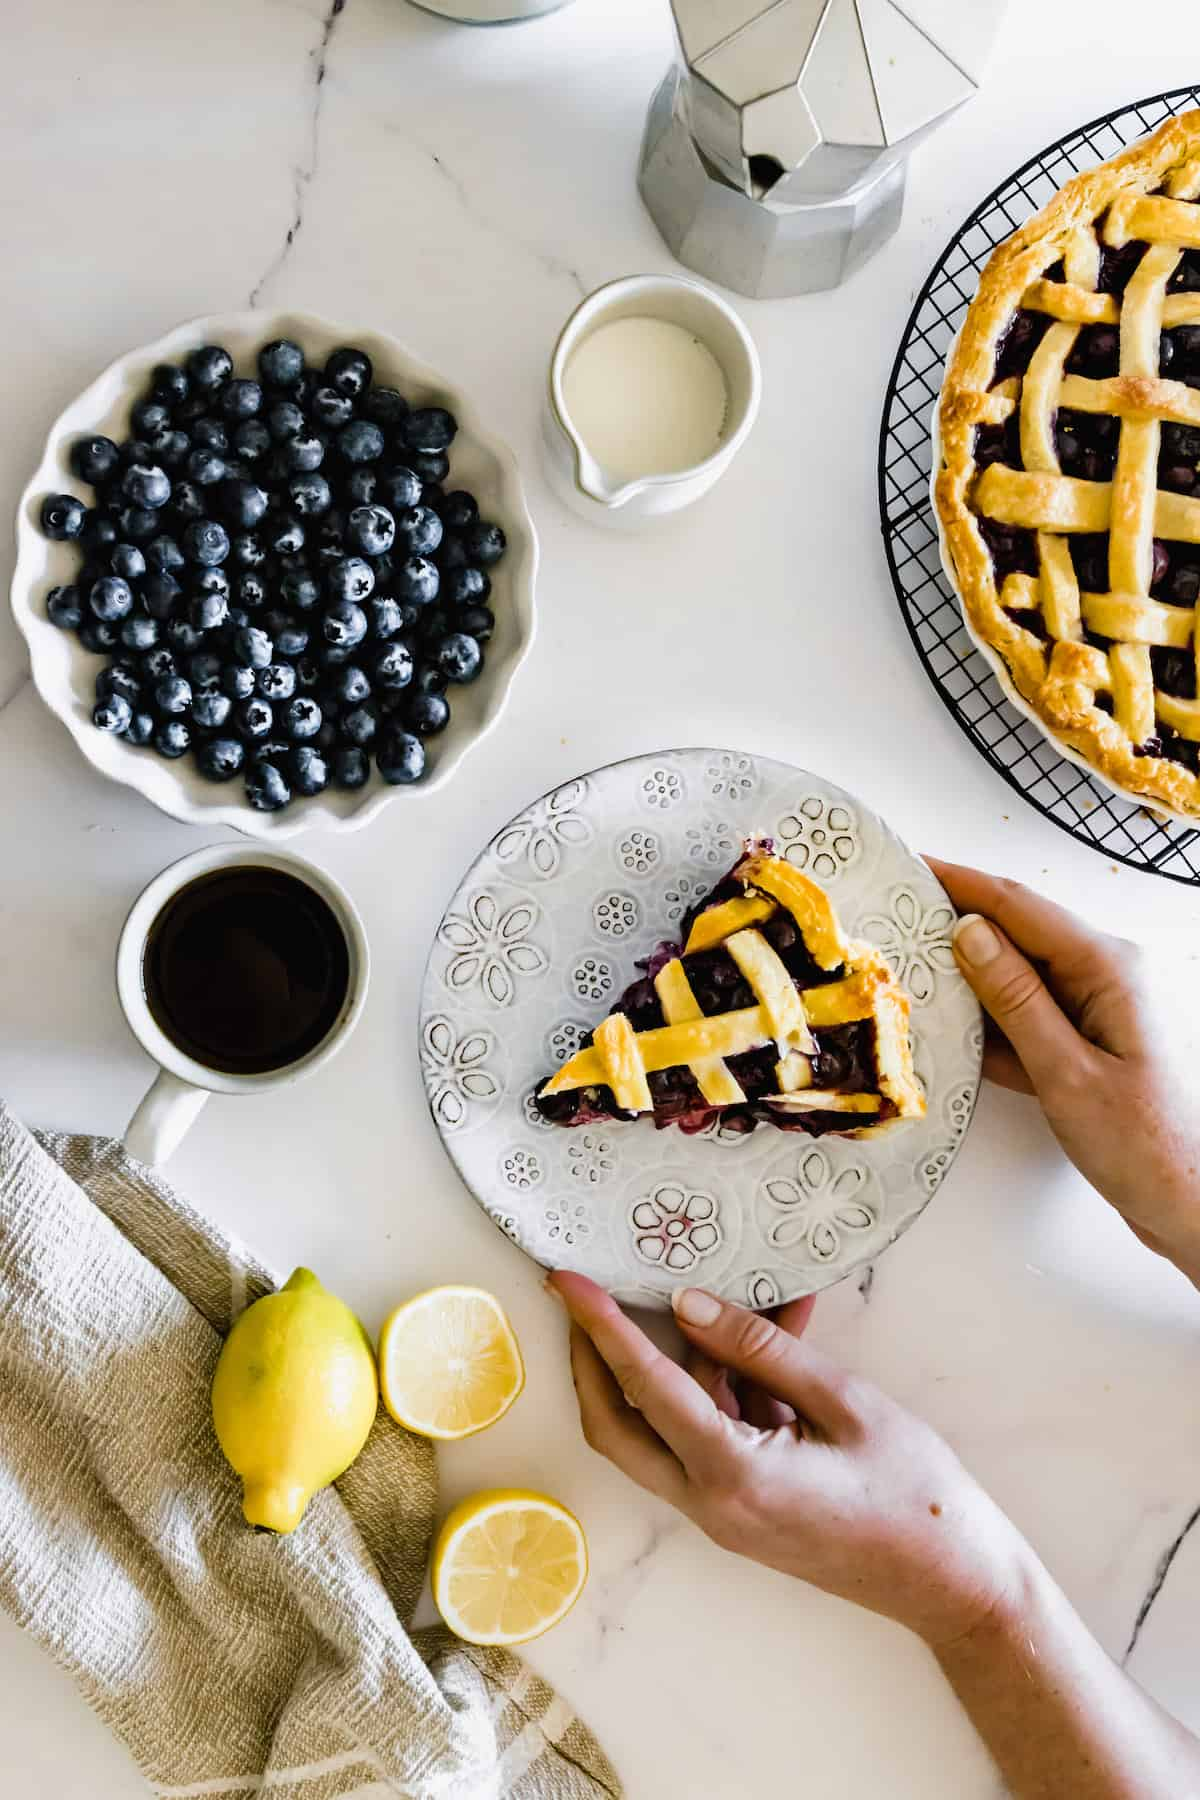 A Pair of Hands Grabbing a Plate of Pie Beside a Bowl of Fresh Blueberries